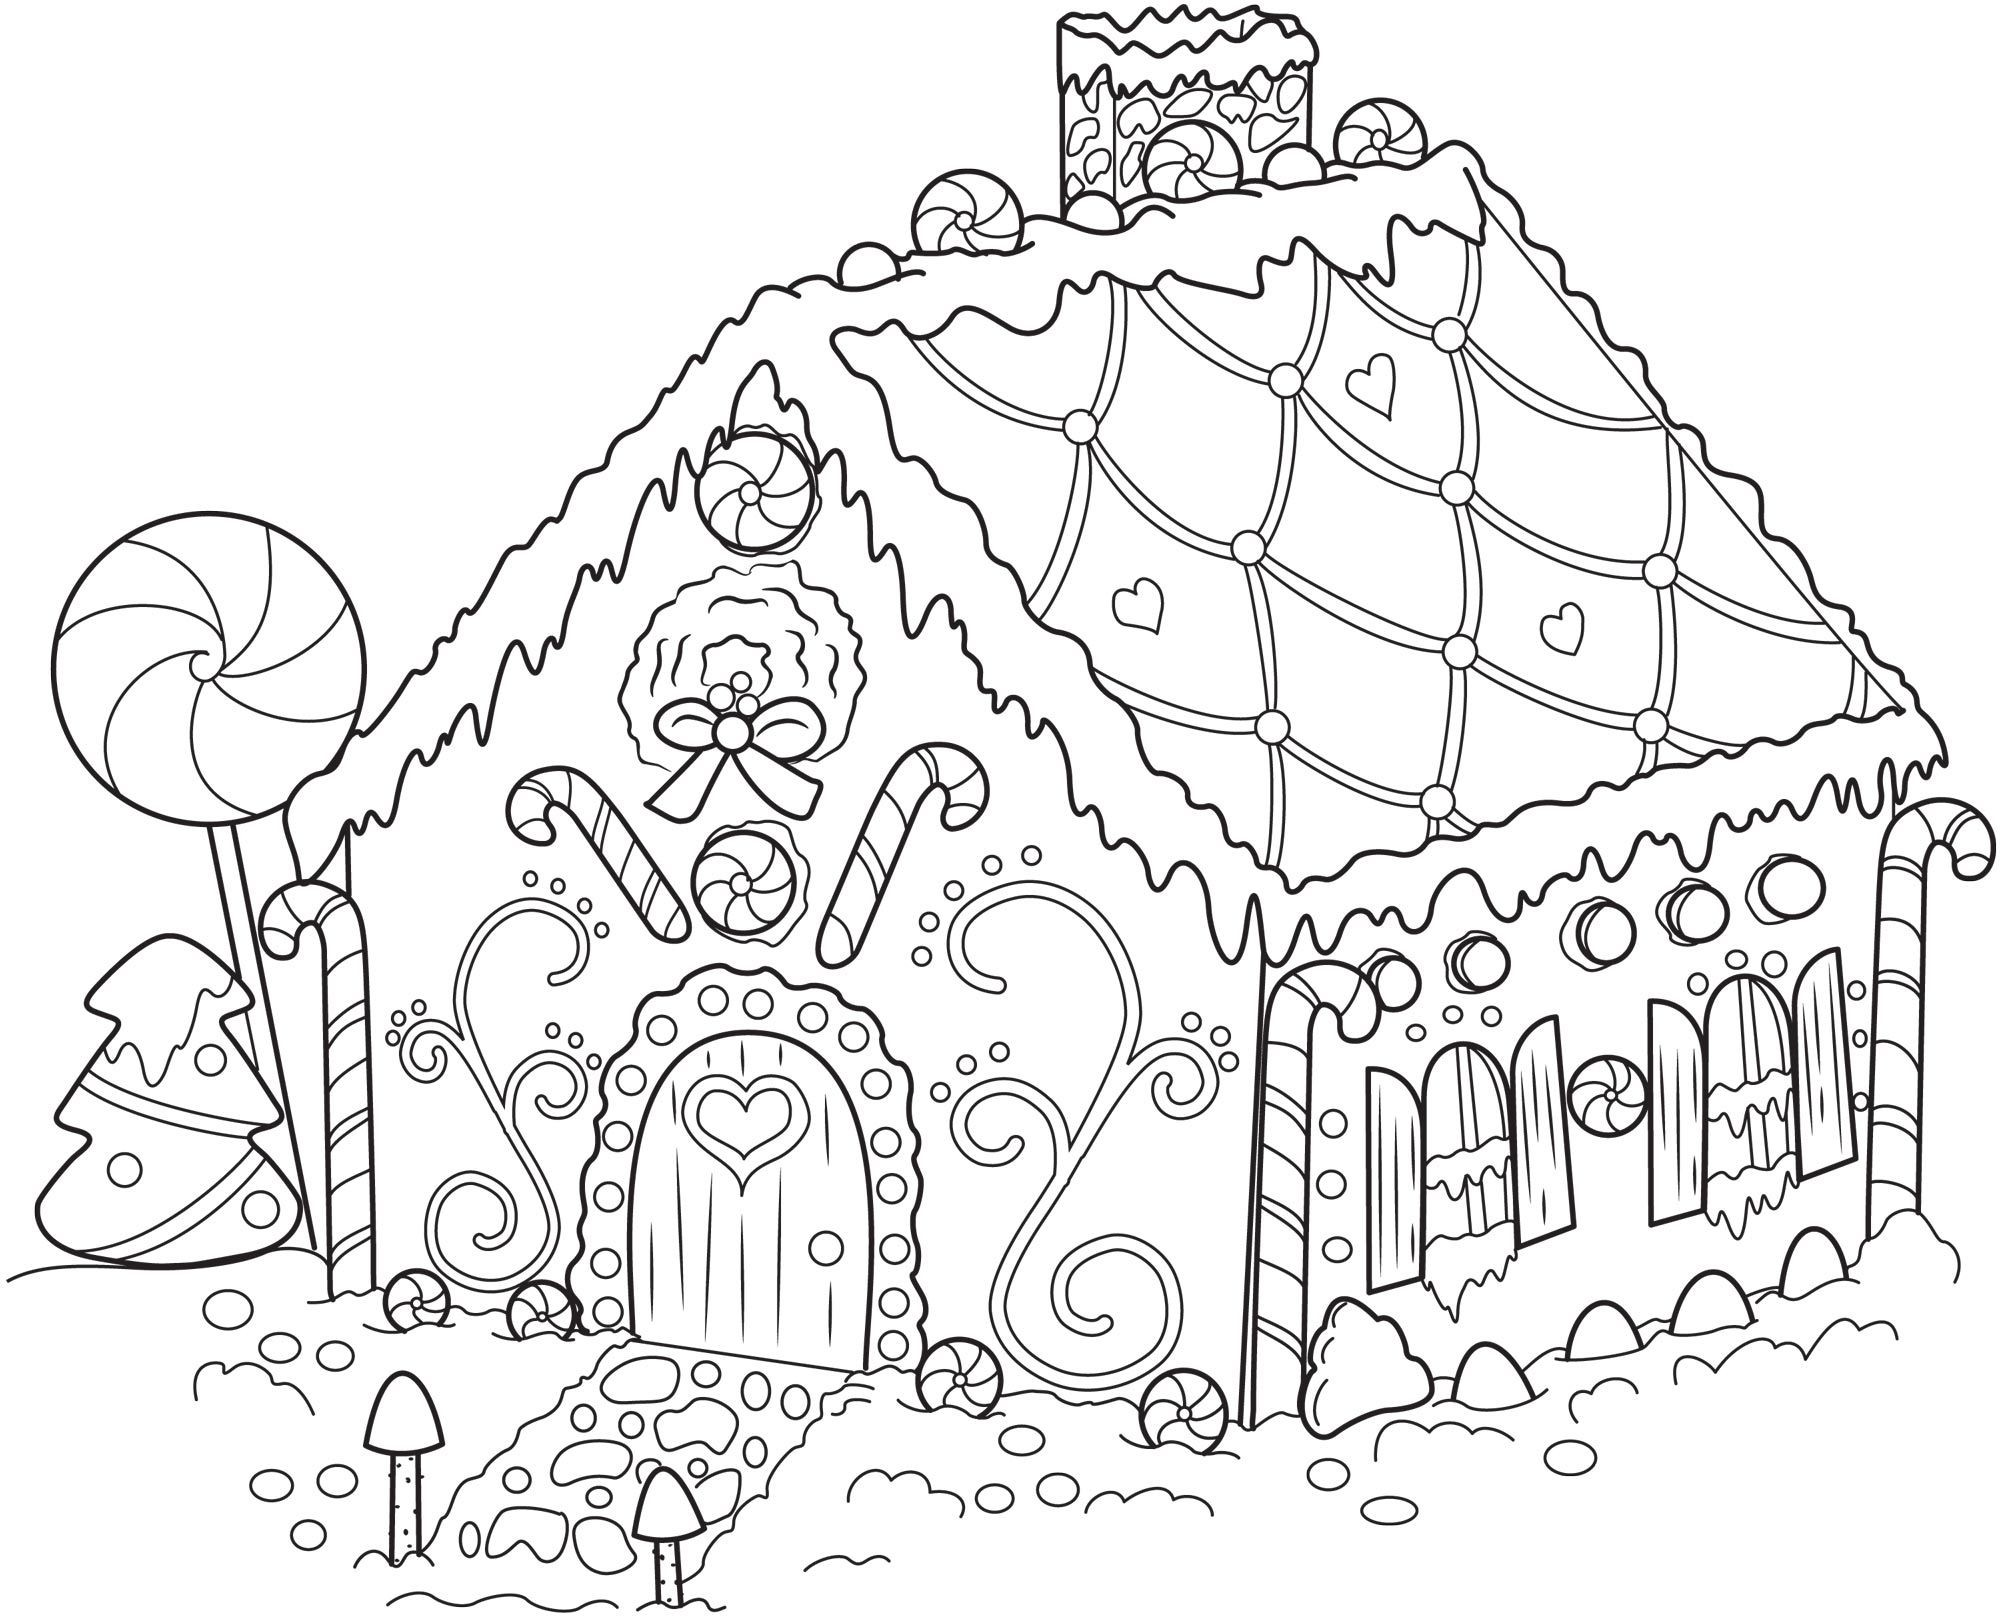 Jan Brett Christmas Coloring Pages With Disney Gingerbread House 19 T Free Online